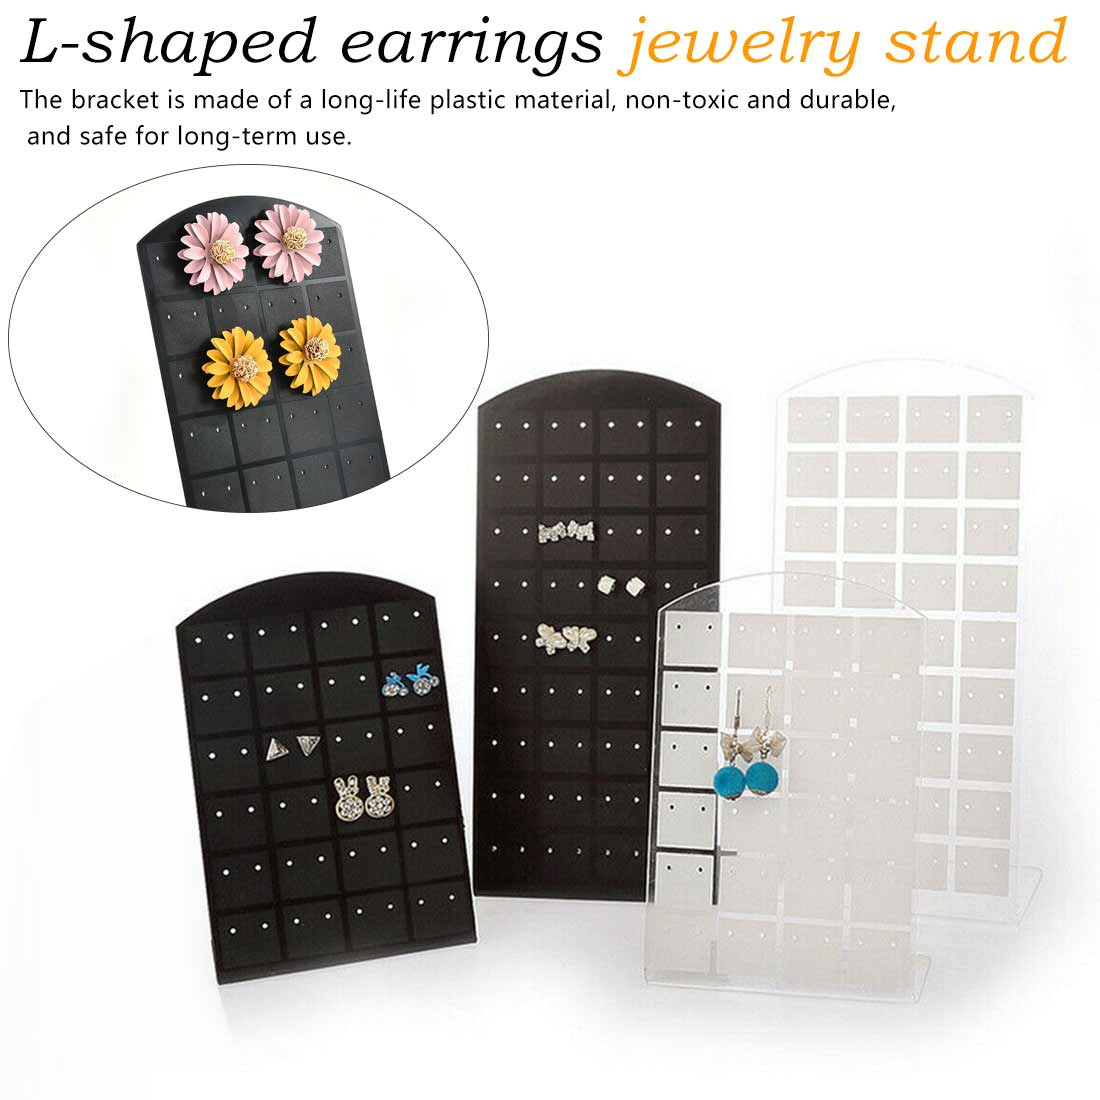 36 Pairs Of 24 Pairs Of 12 Pairs Of Jewelry Black And White Display Stand L-shaped Earrings Jewelry Frame